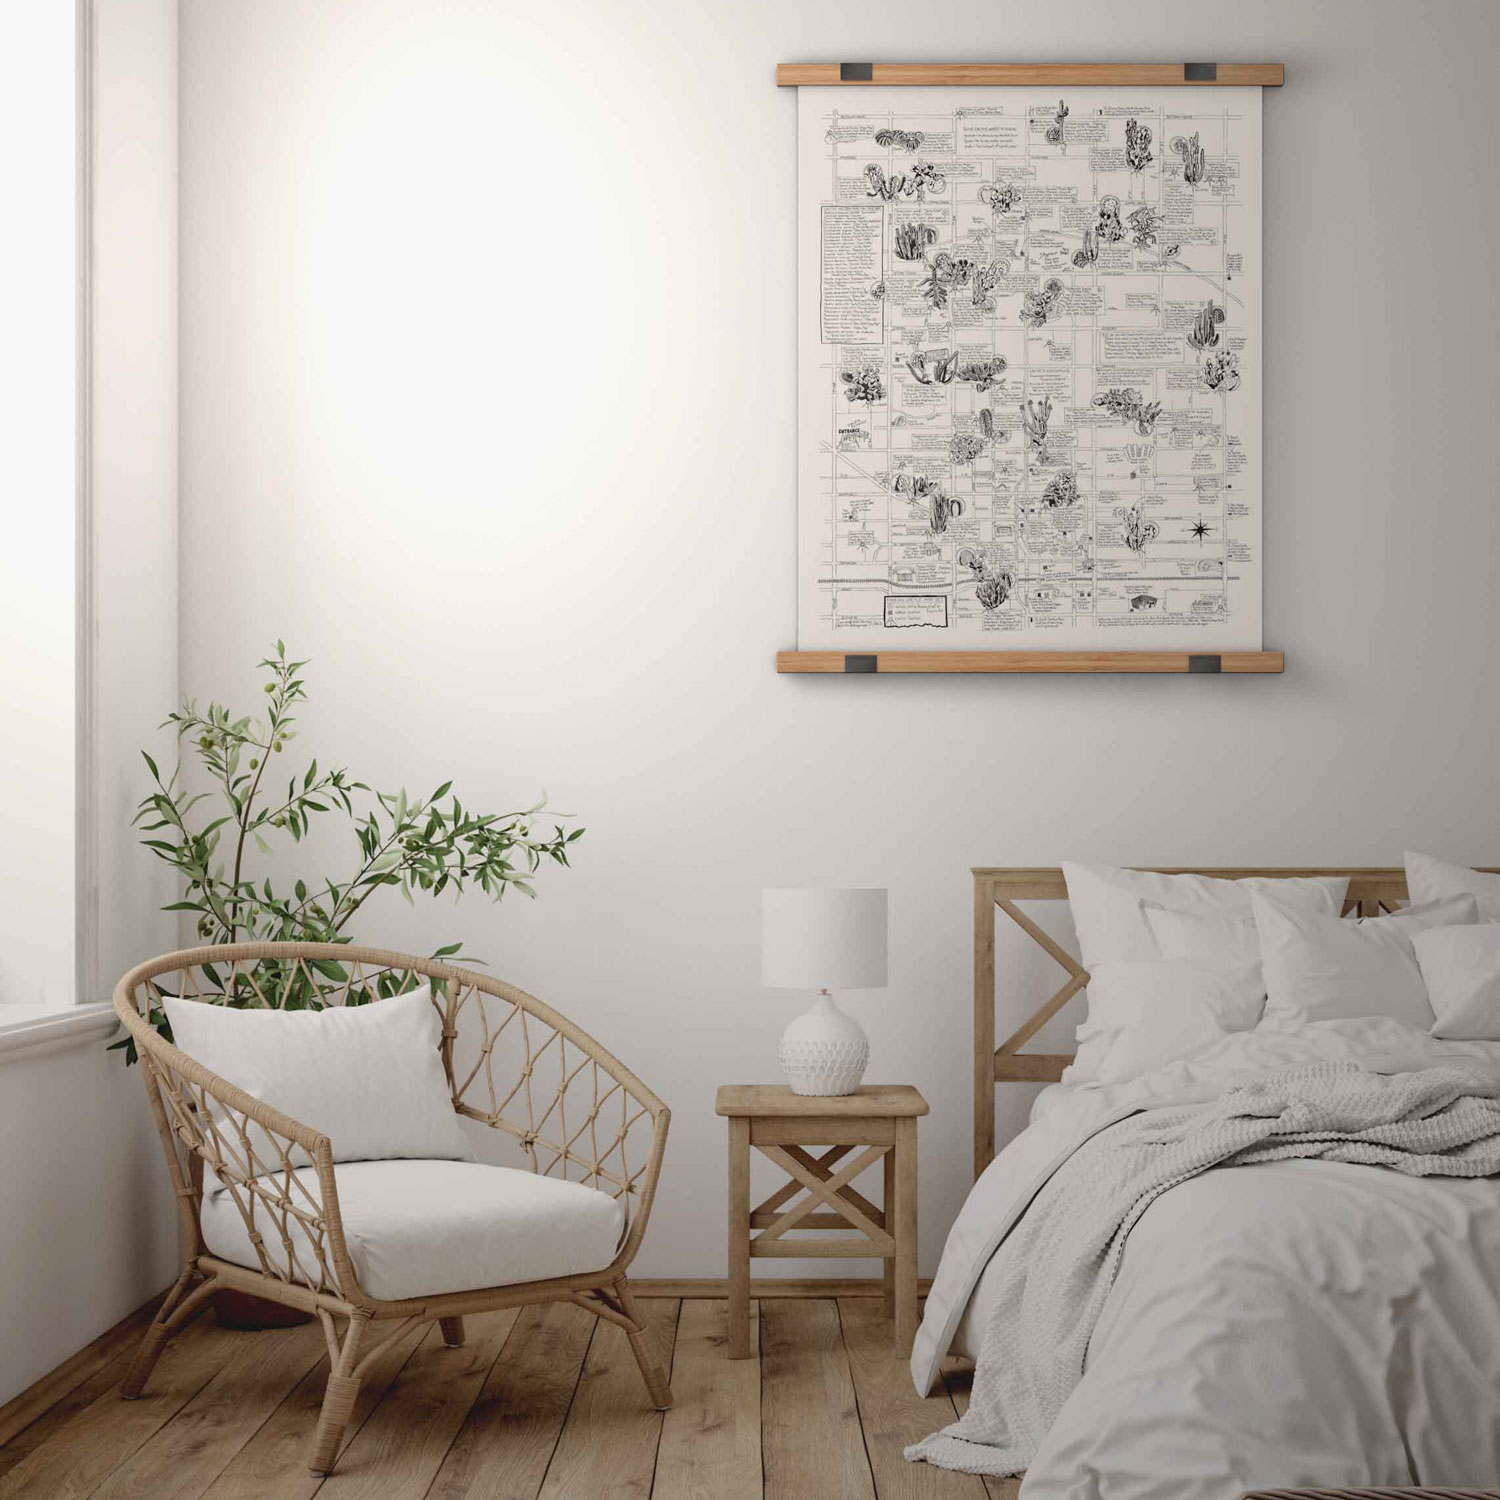 bedroom with cactus map on wall